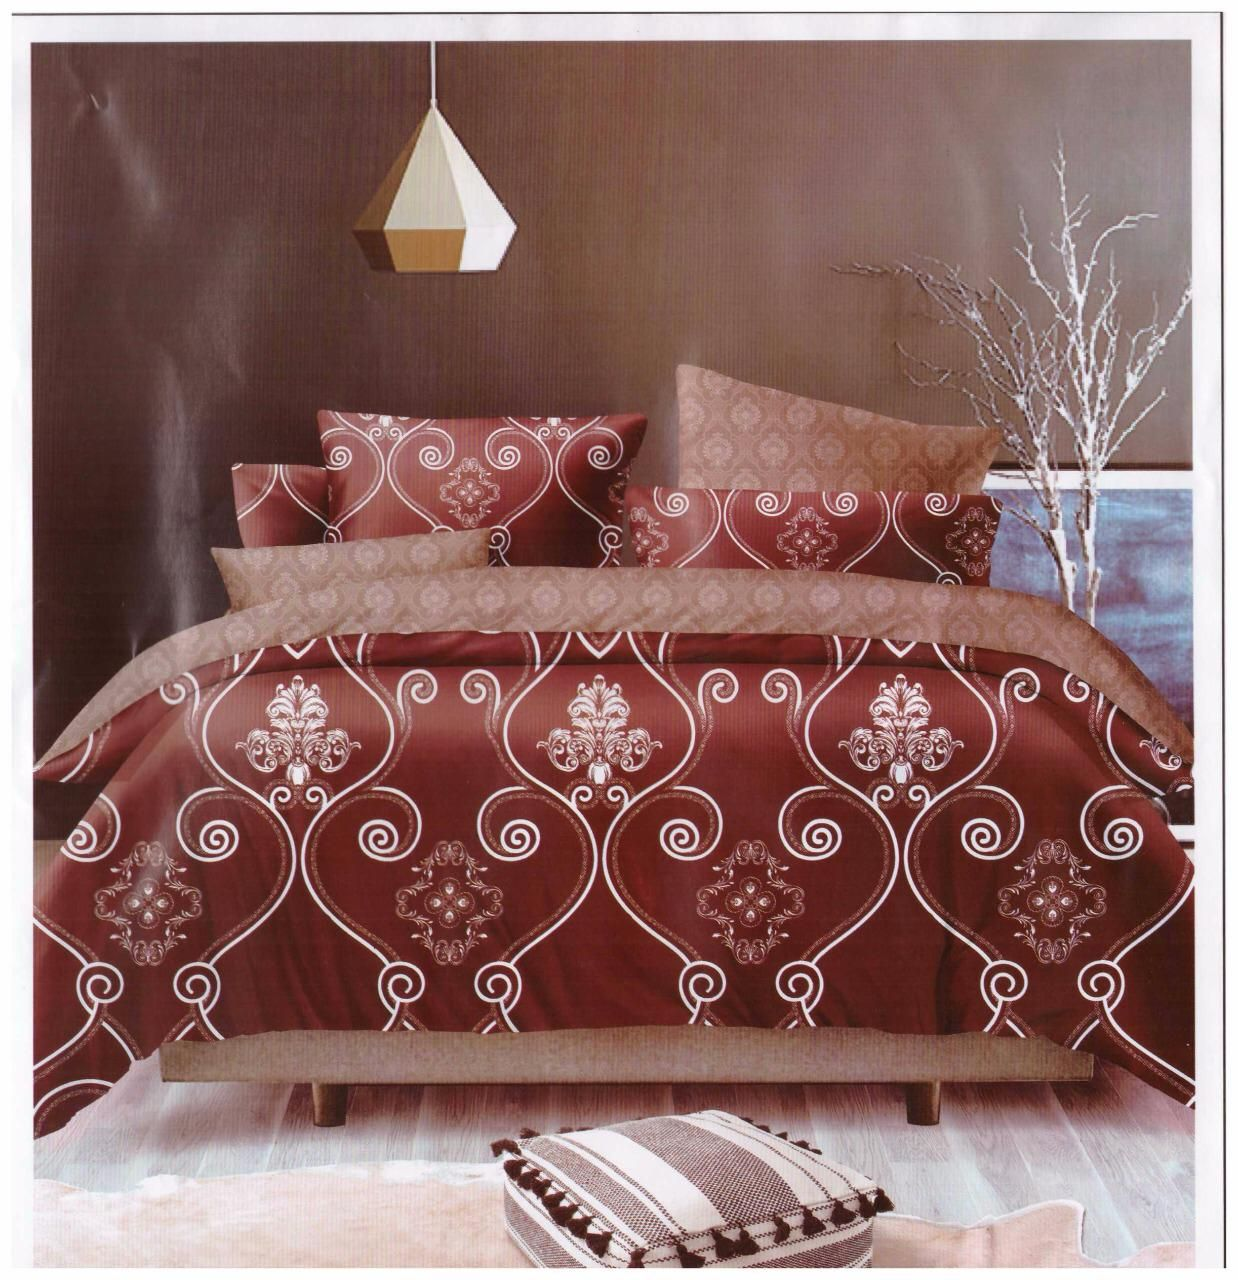 The Export World Is Wholesale Duvet Cover Sets Supplier In 2020